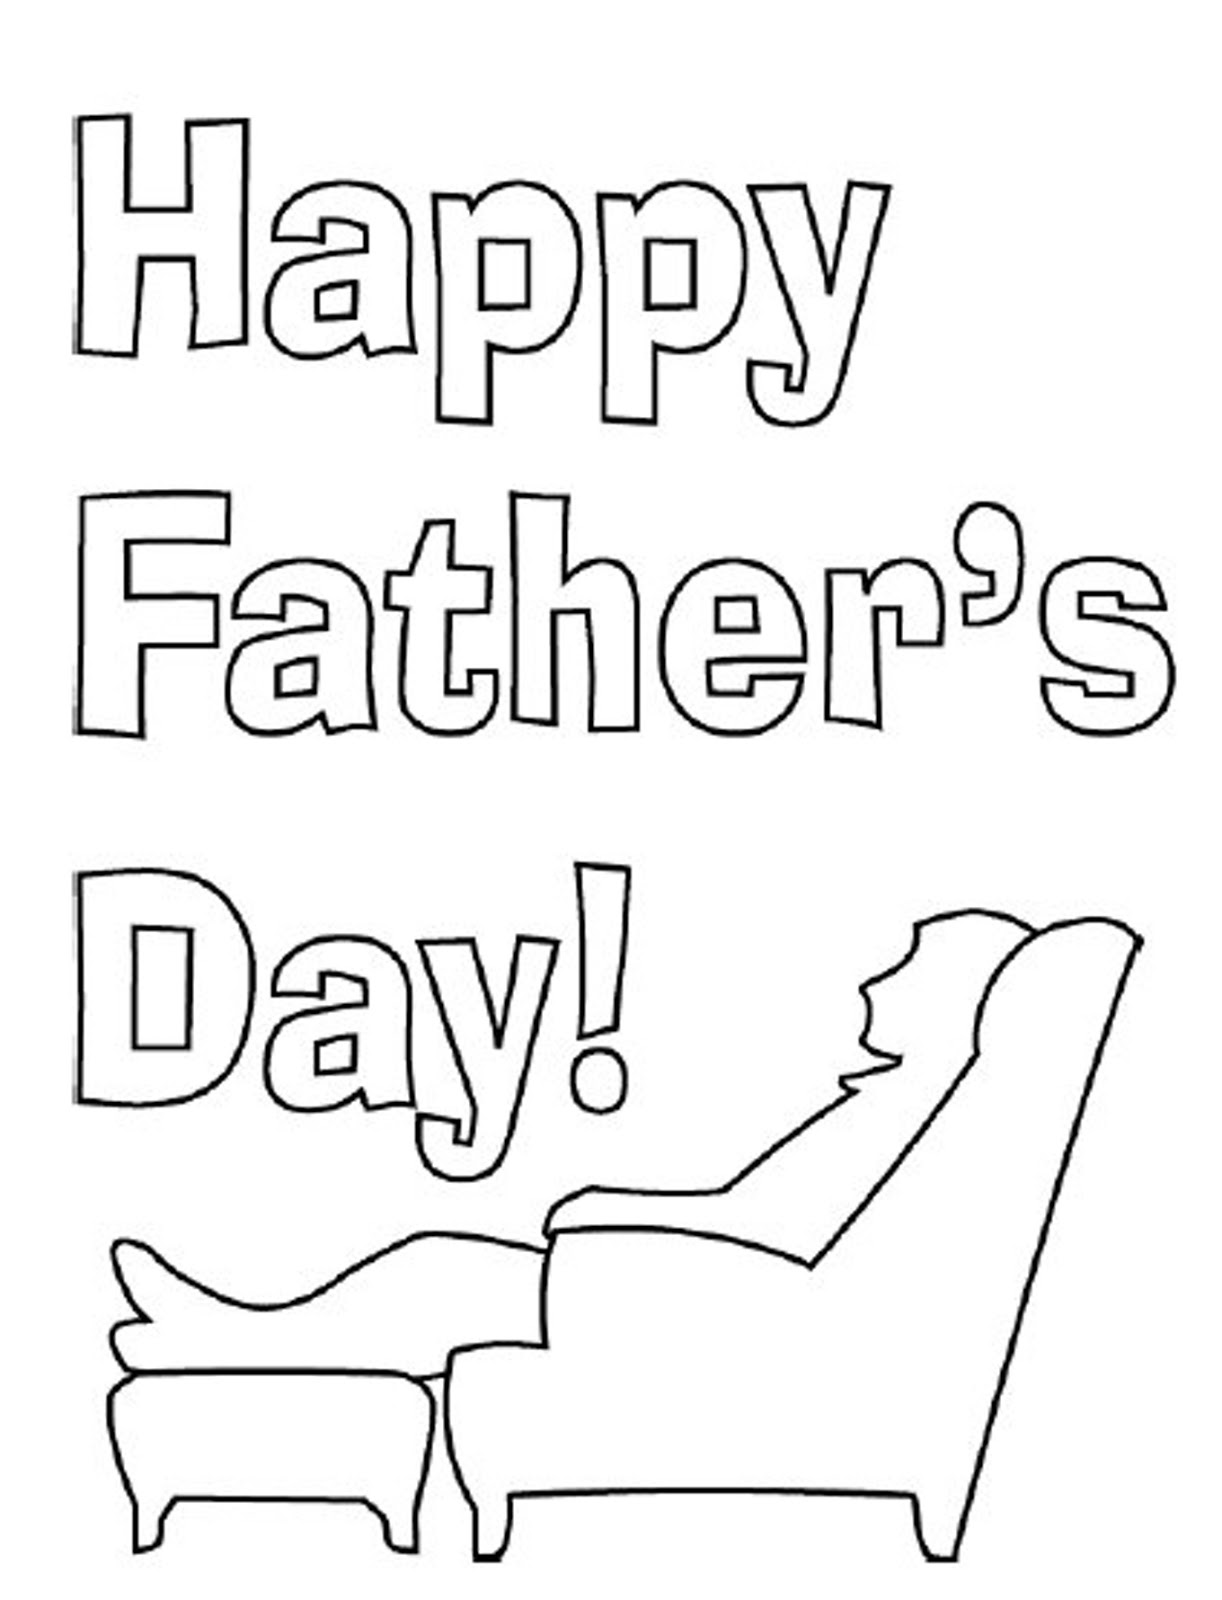 free happy fathers day coloring pages printable sheets cards